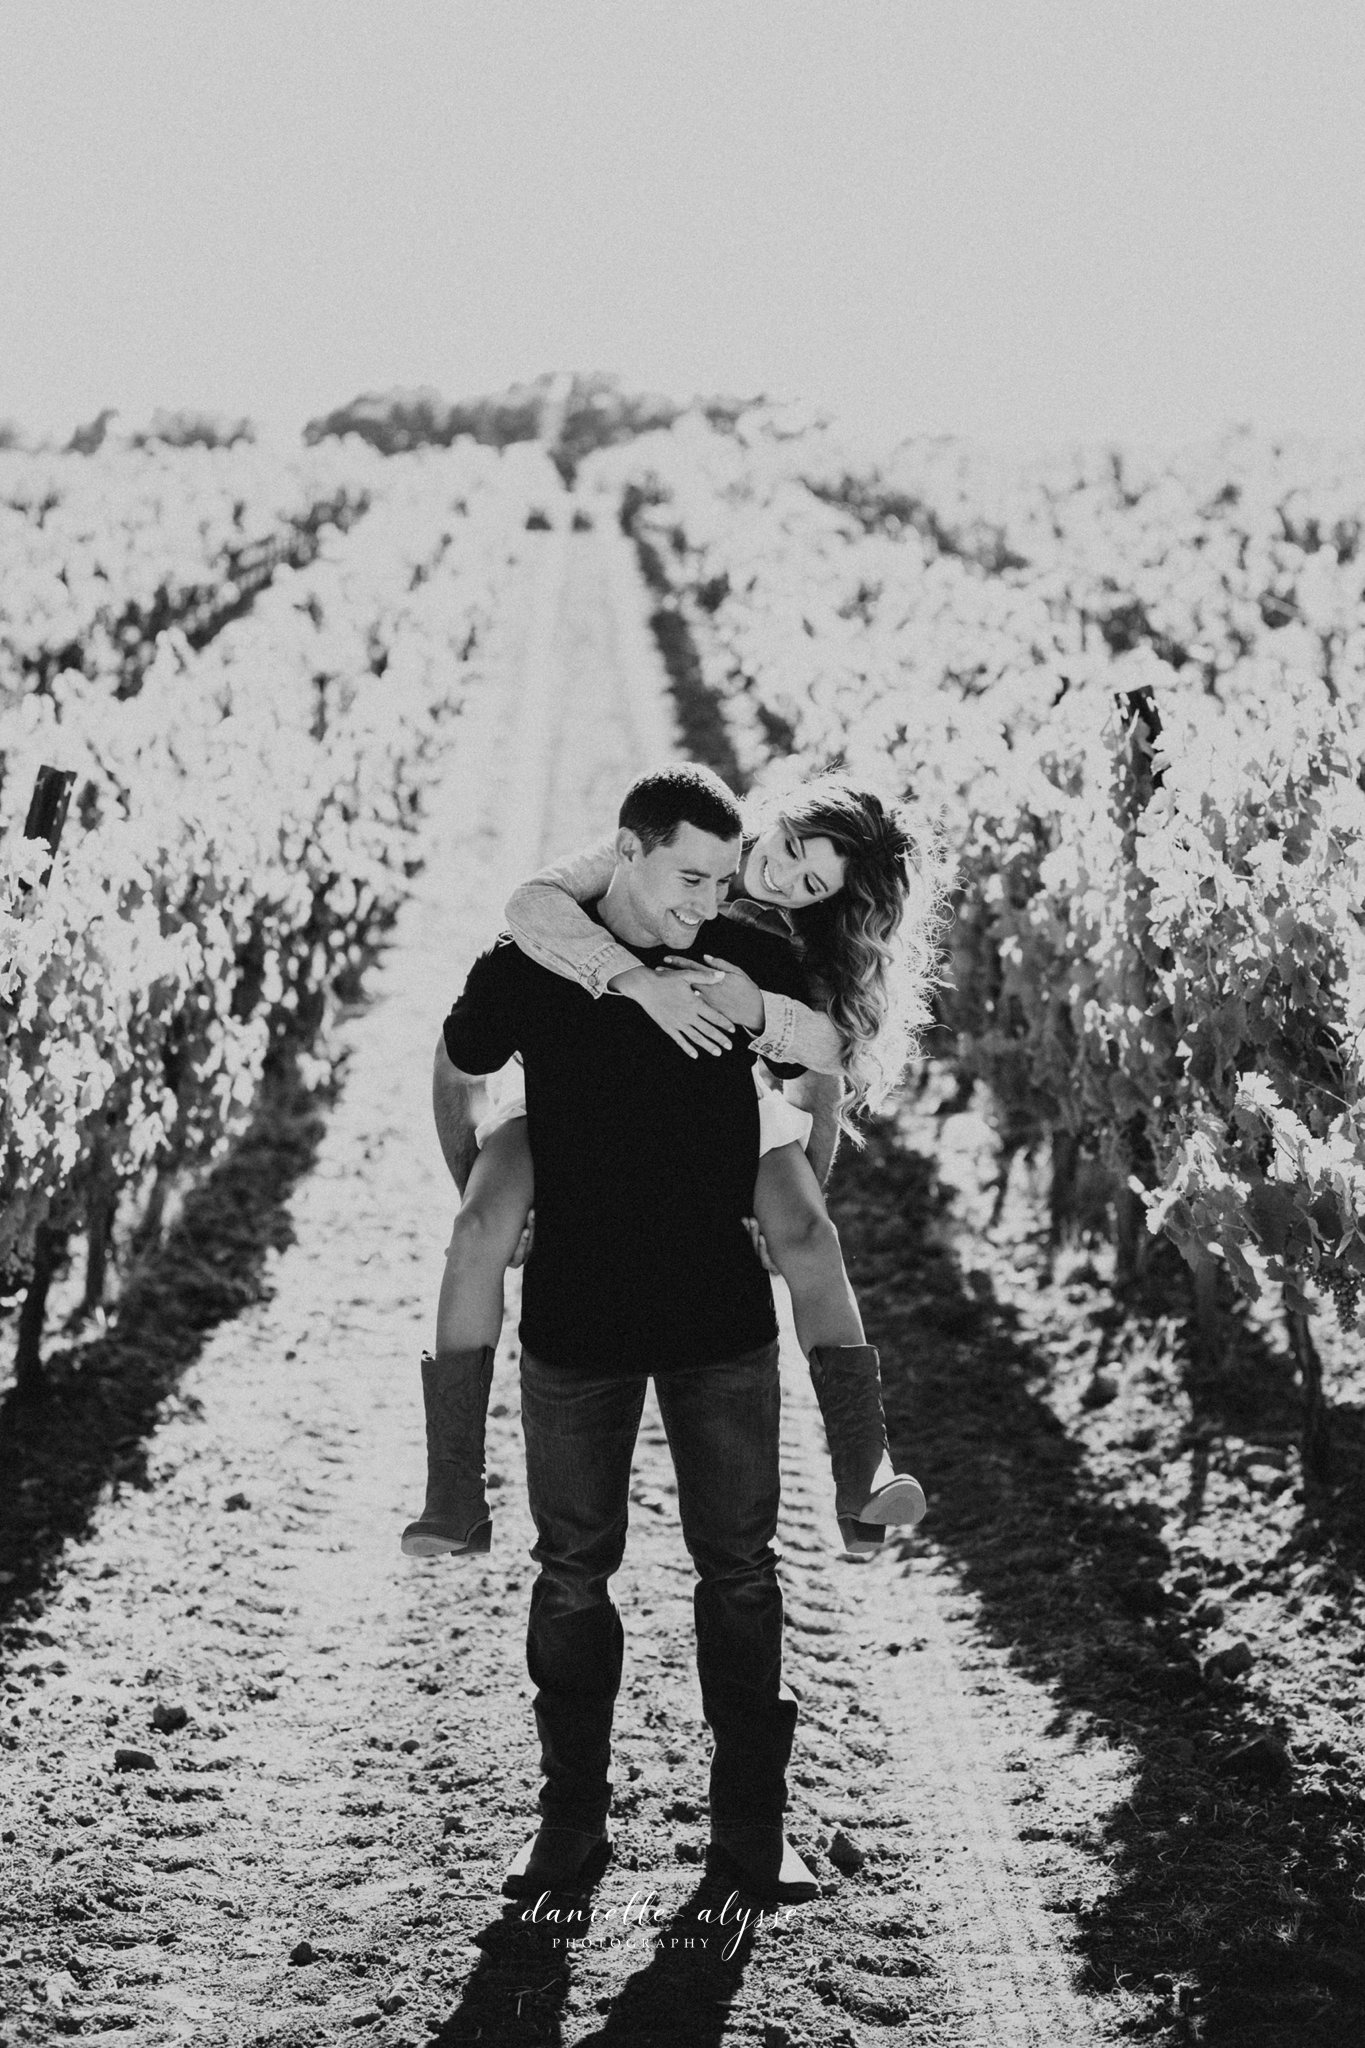 180804_engagement_katie_matt_dillon_beach_napa_danielle_alysse_photography_blog_22_WEB.jpg